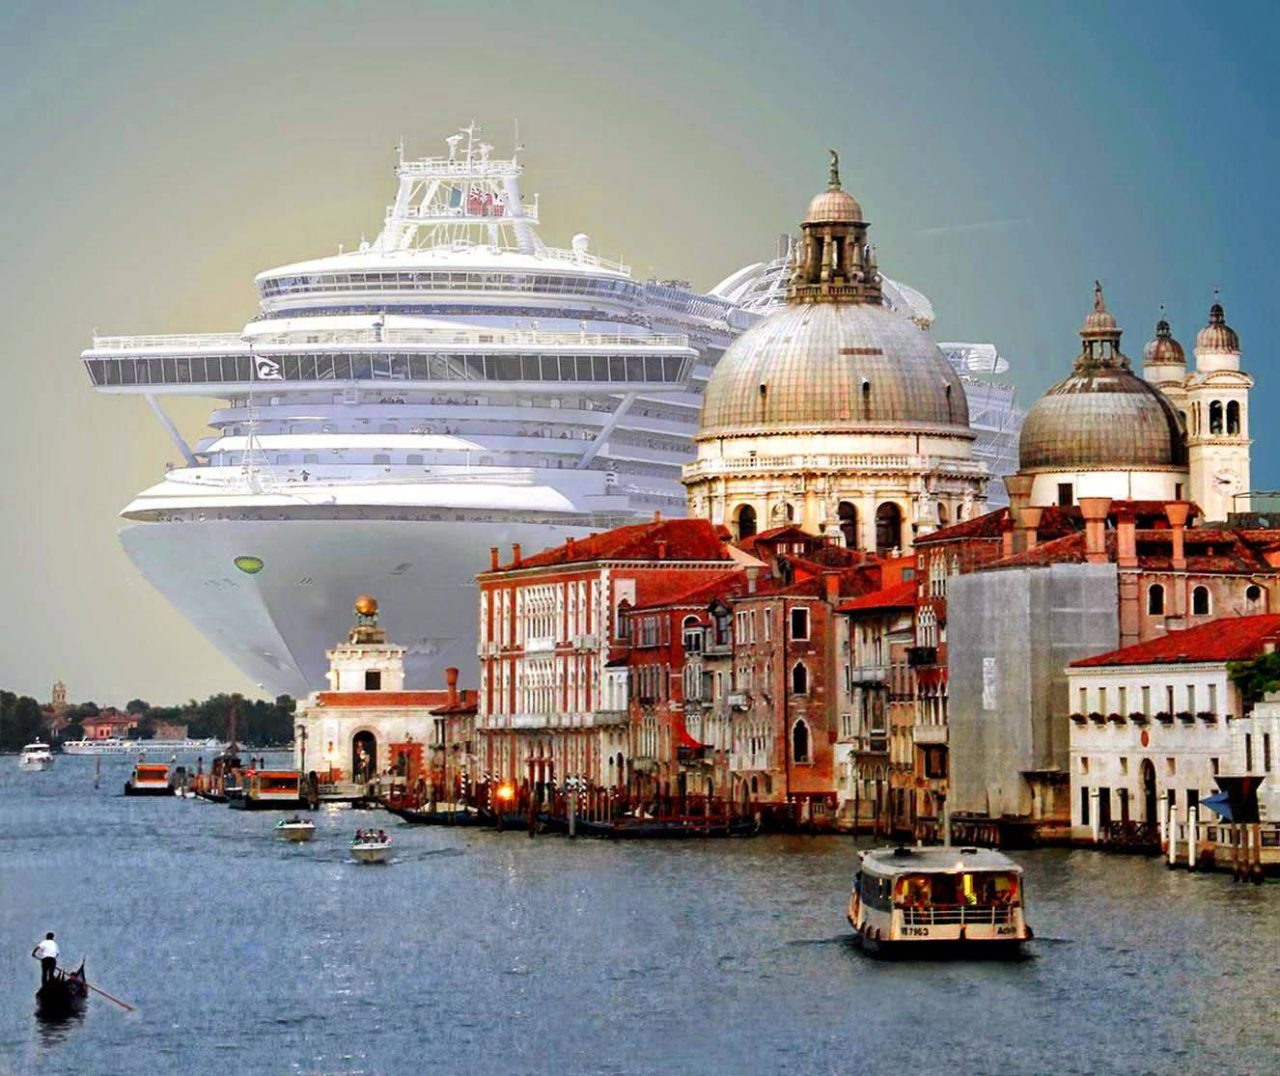 Cruise Tourism in Venice, Italy – Most Beautiful Picture of the Day: October 18, 2017 – Mo ...